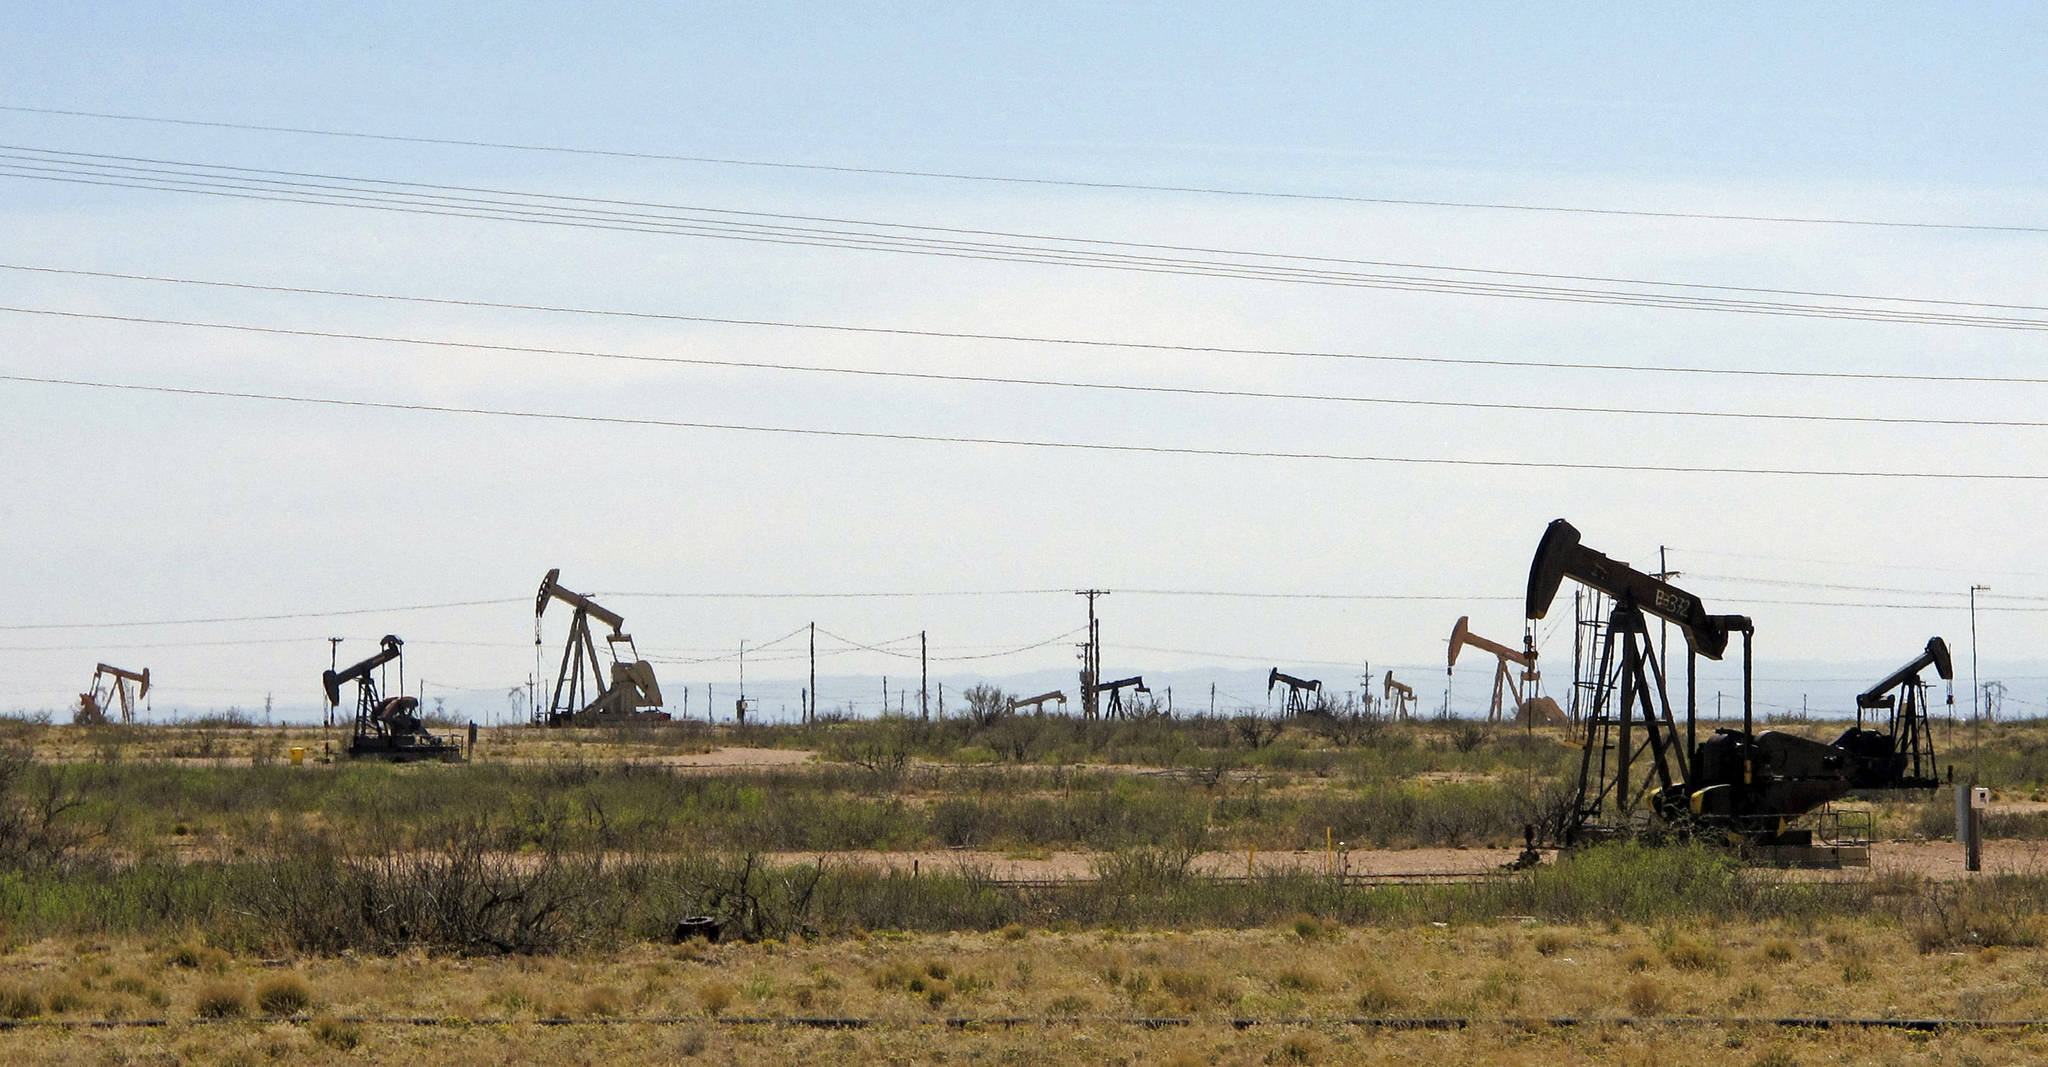 Oil rigs stand in the Loco Hills field on U.S. Highway 82 in Eddy County near Artesia, N.M., one of the most active regions of the Permian Basin. President Joe Biden is set to announce a wide-ranging moratorium on new oil and gas leasing on U.S. lands, as his administration moves quickly to reverse Trump administration policies on energy and the environment and address climate change. (AP Photo/Jeri Clausing, File)